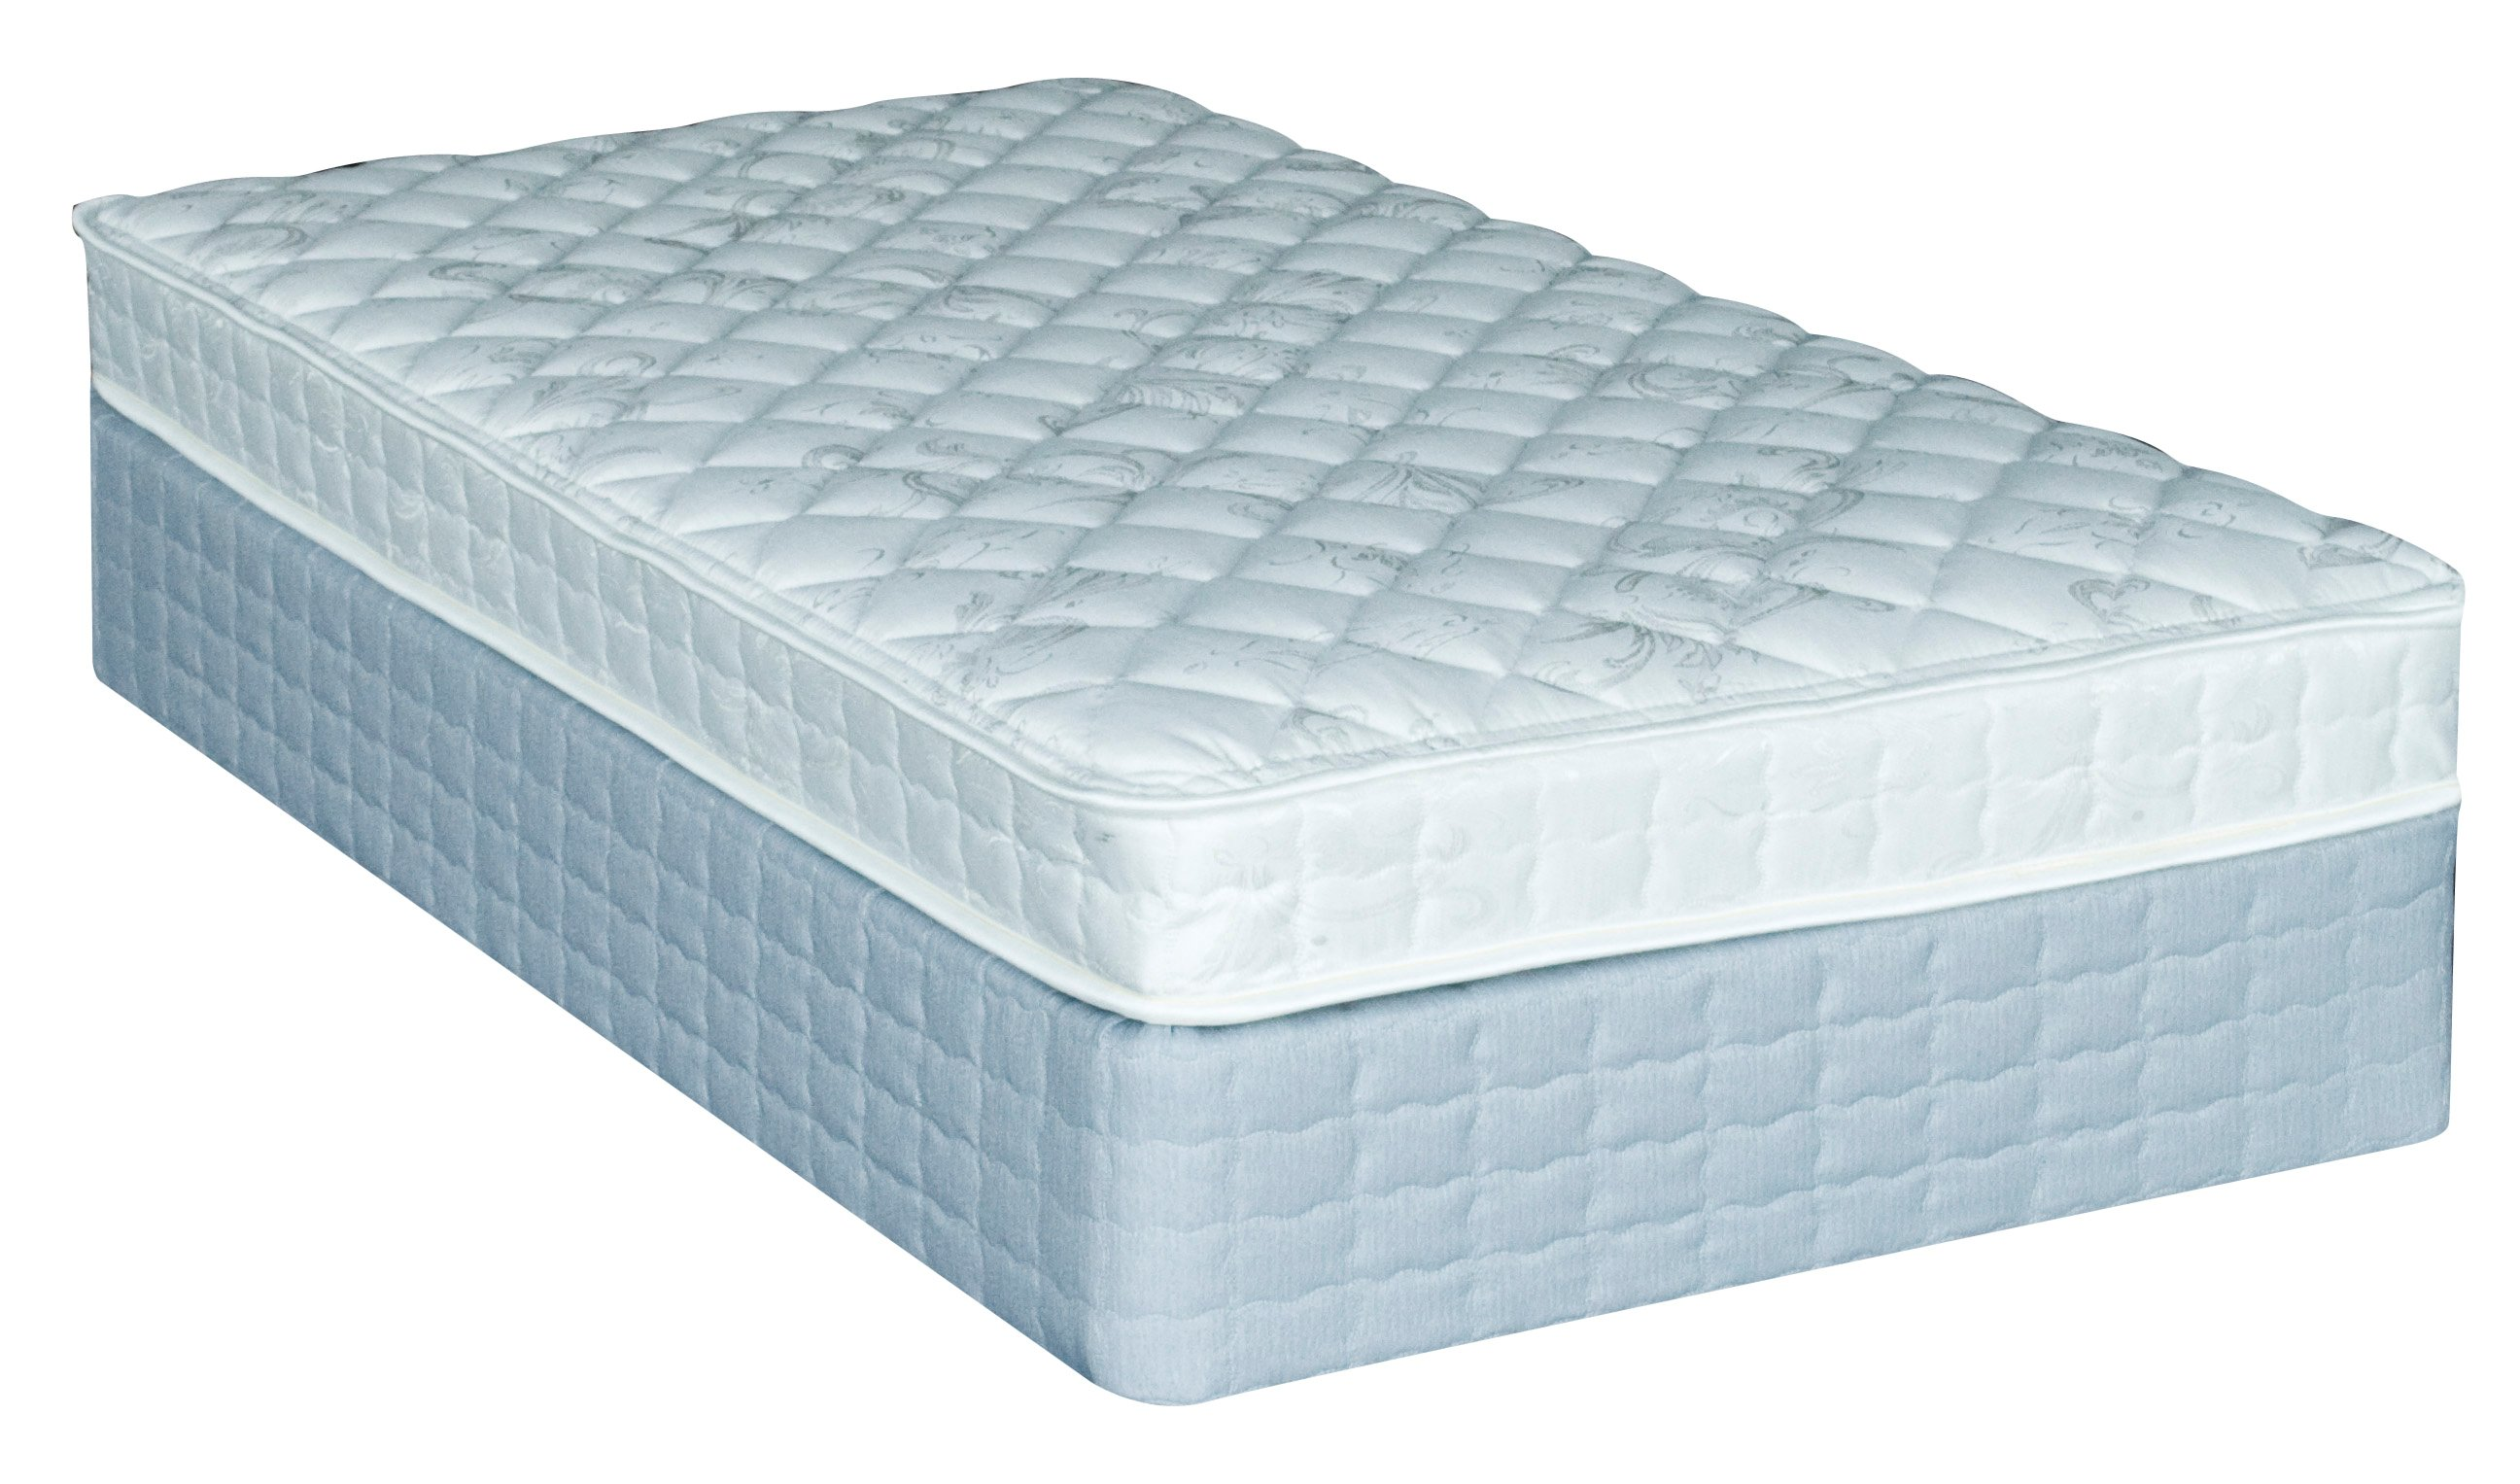 Sertapedic Emmet Mattress Reviews GoodBed